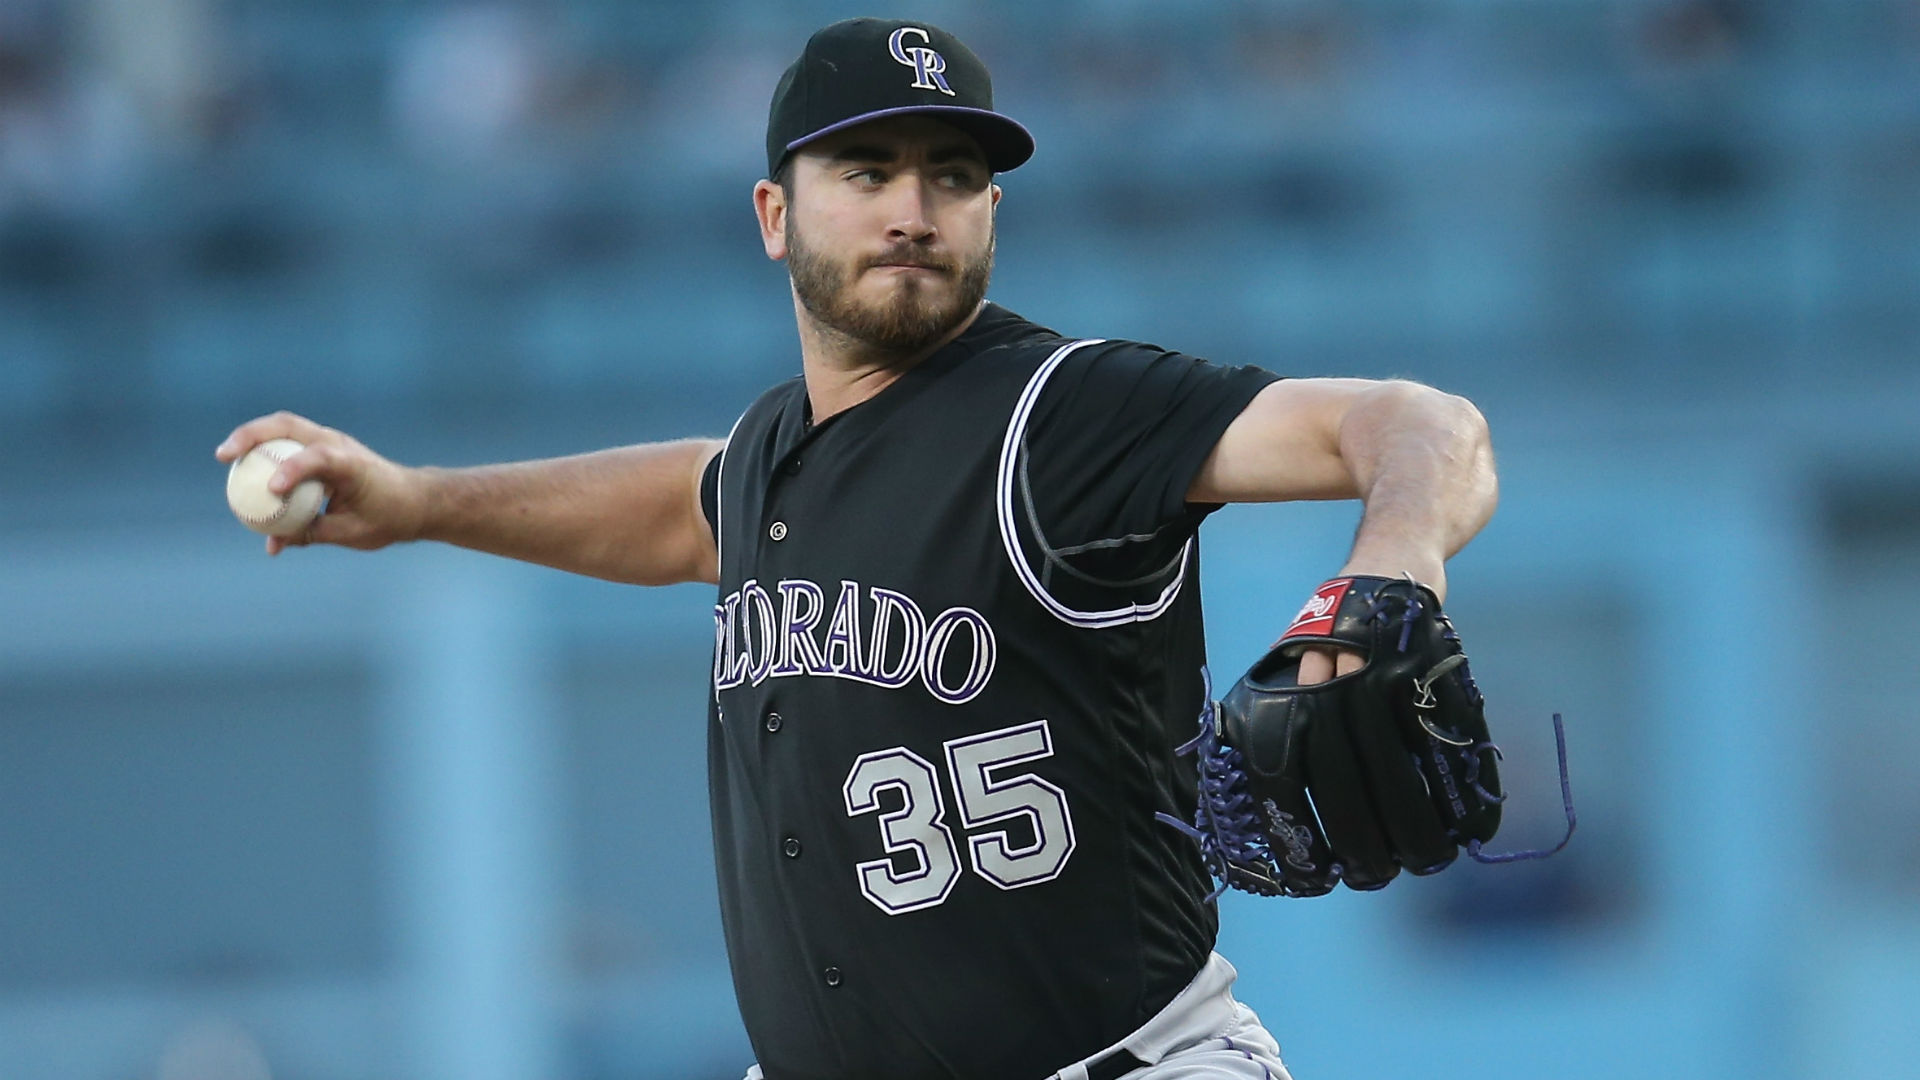 Rockies pitcher Chad Bettis had testicular cancer, full recovery expected